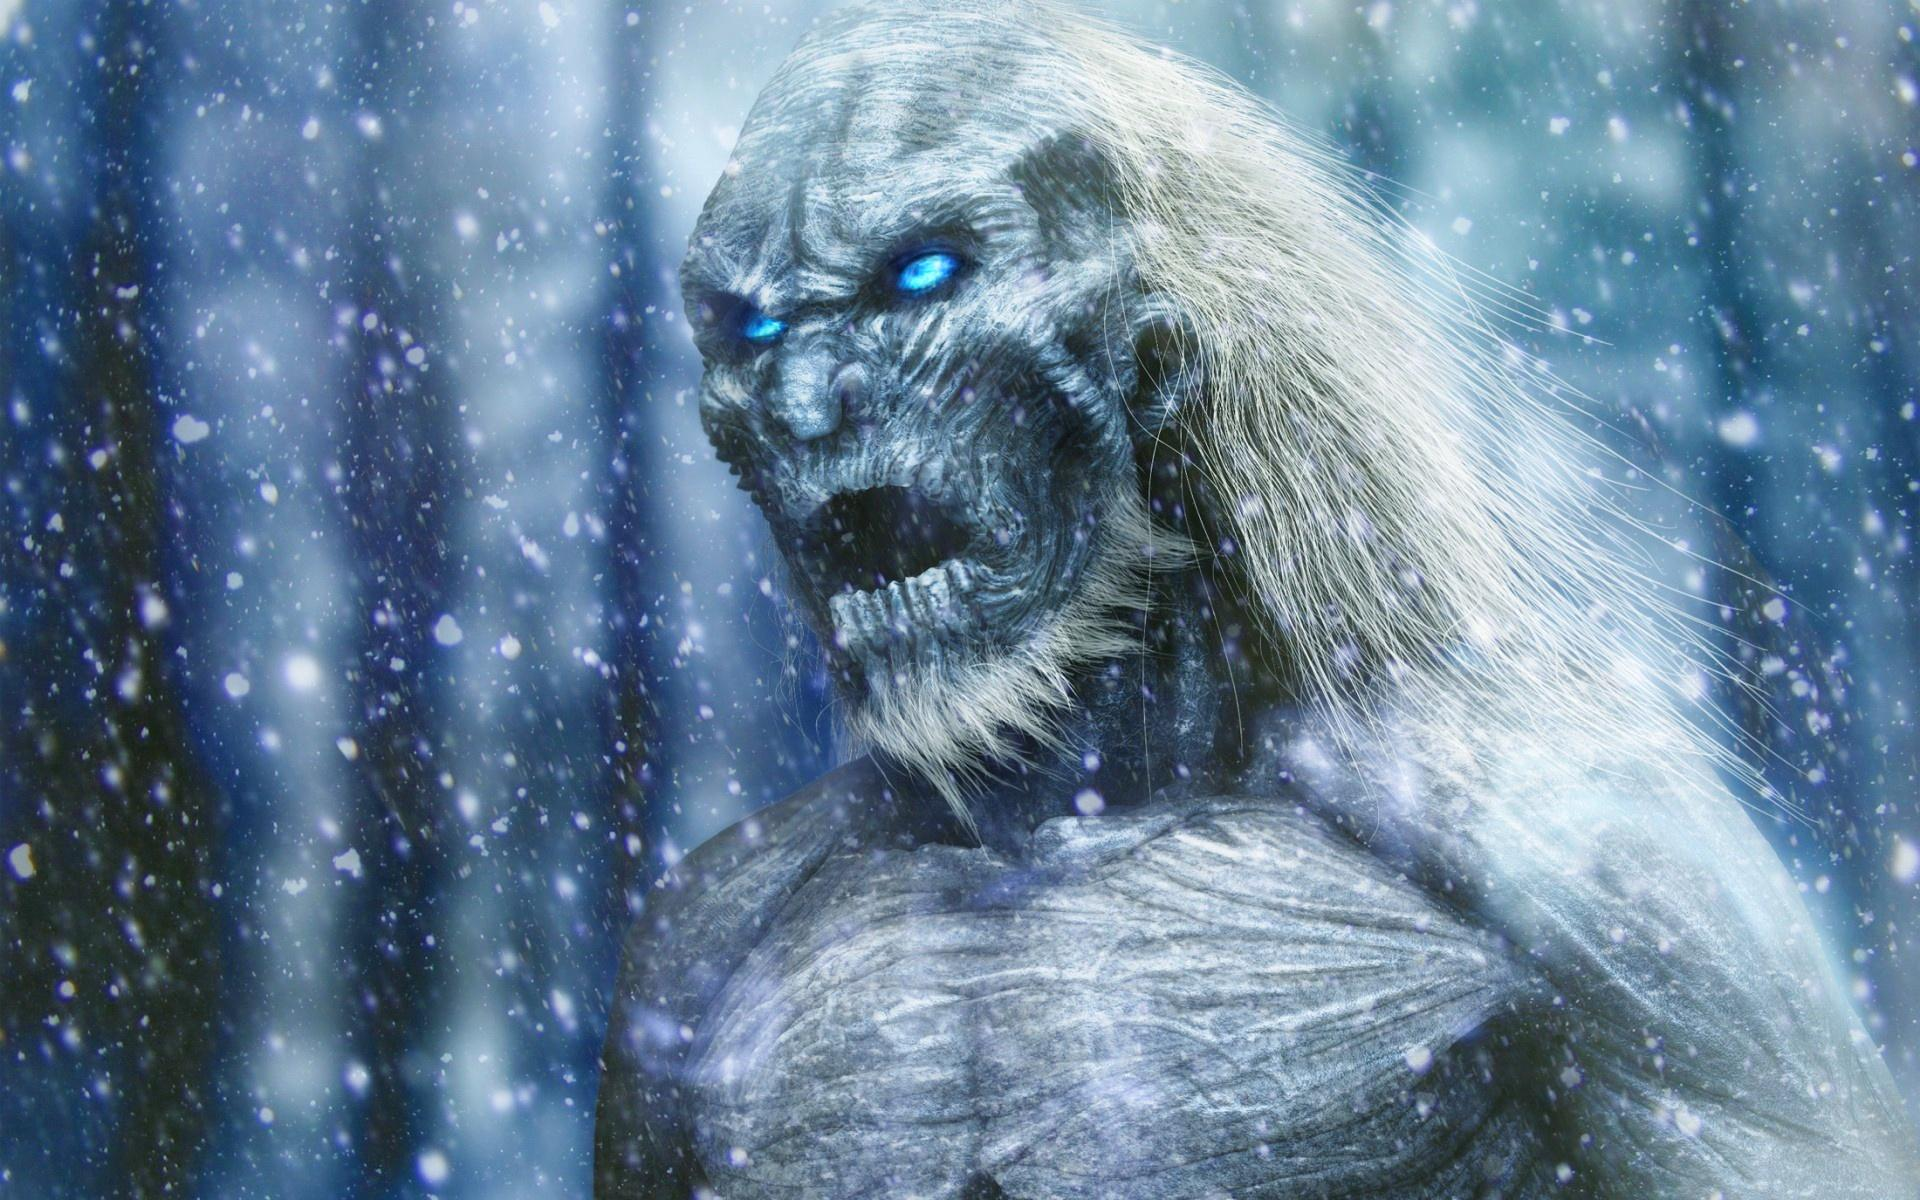 White Walker Wallpaper on game of thrones crown